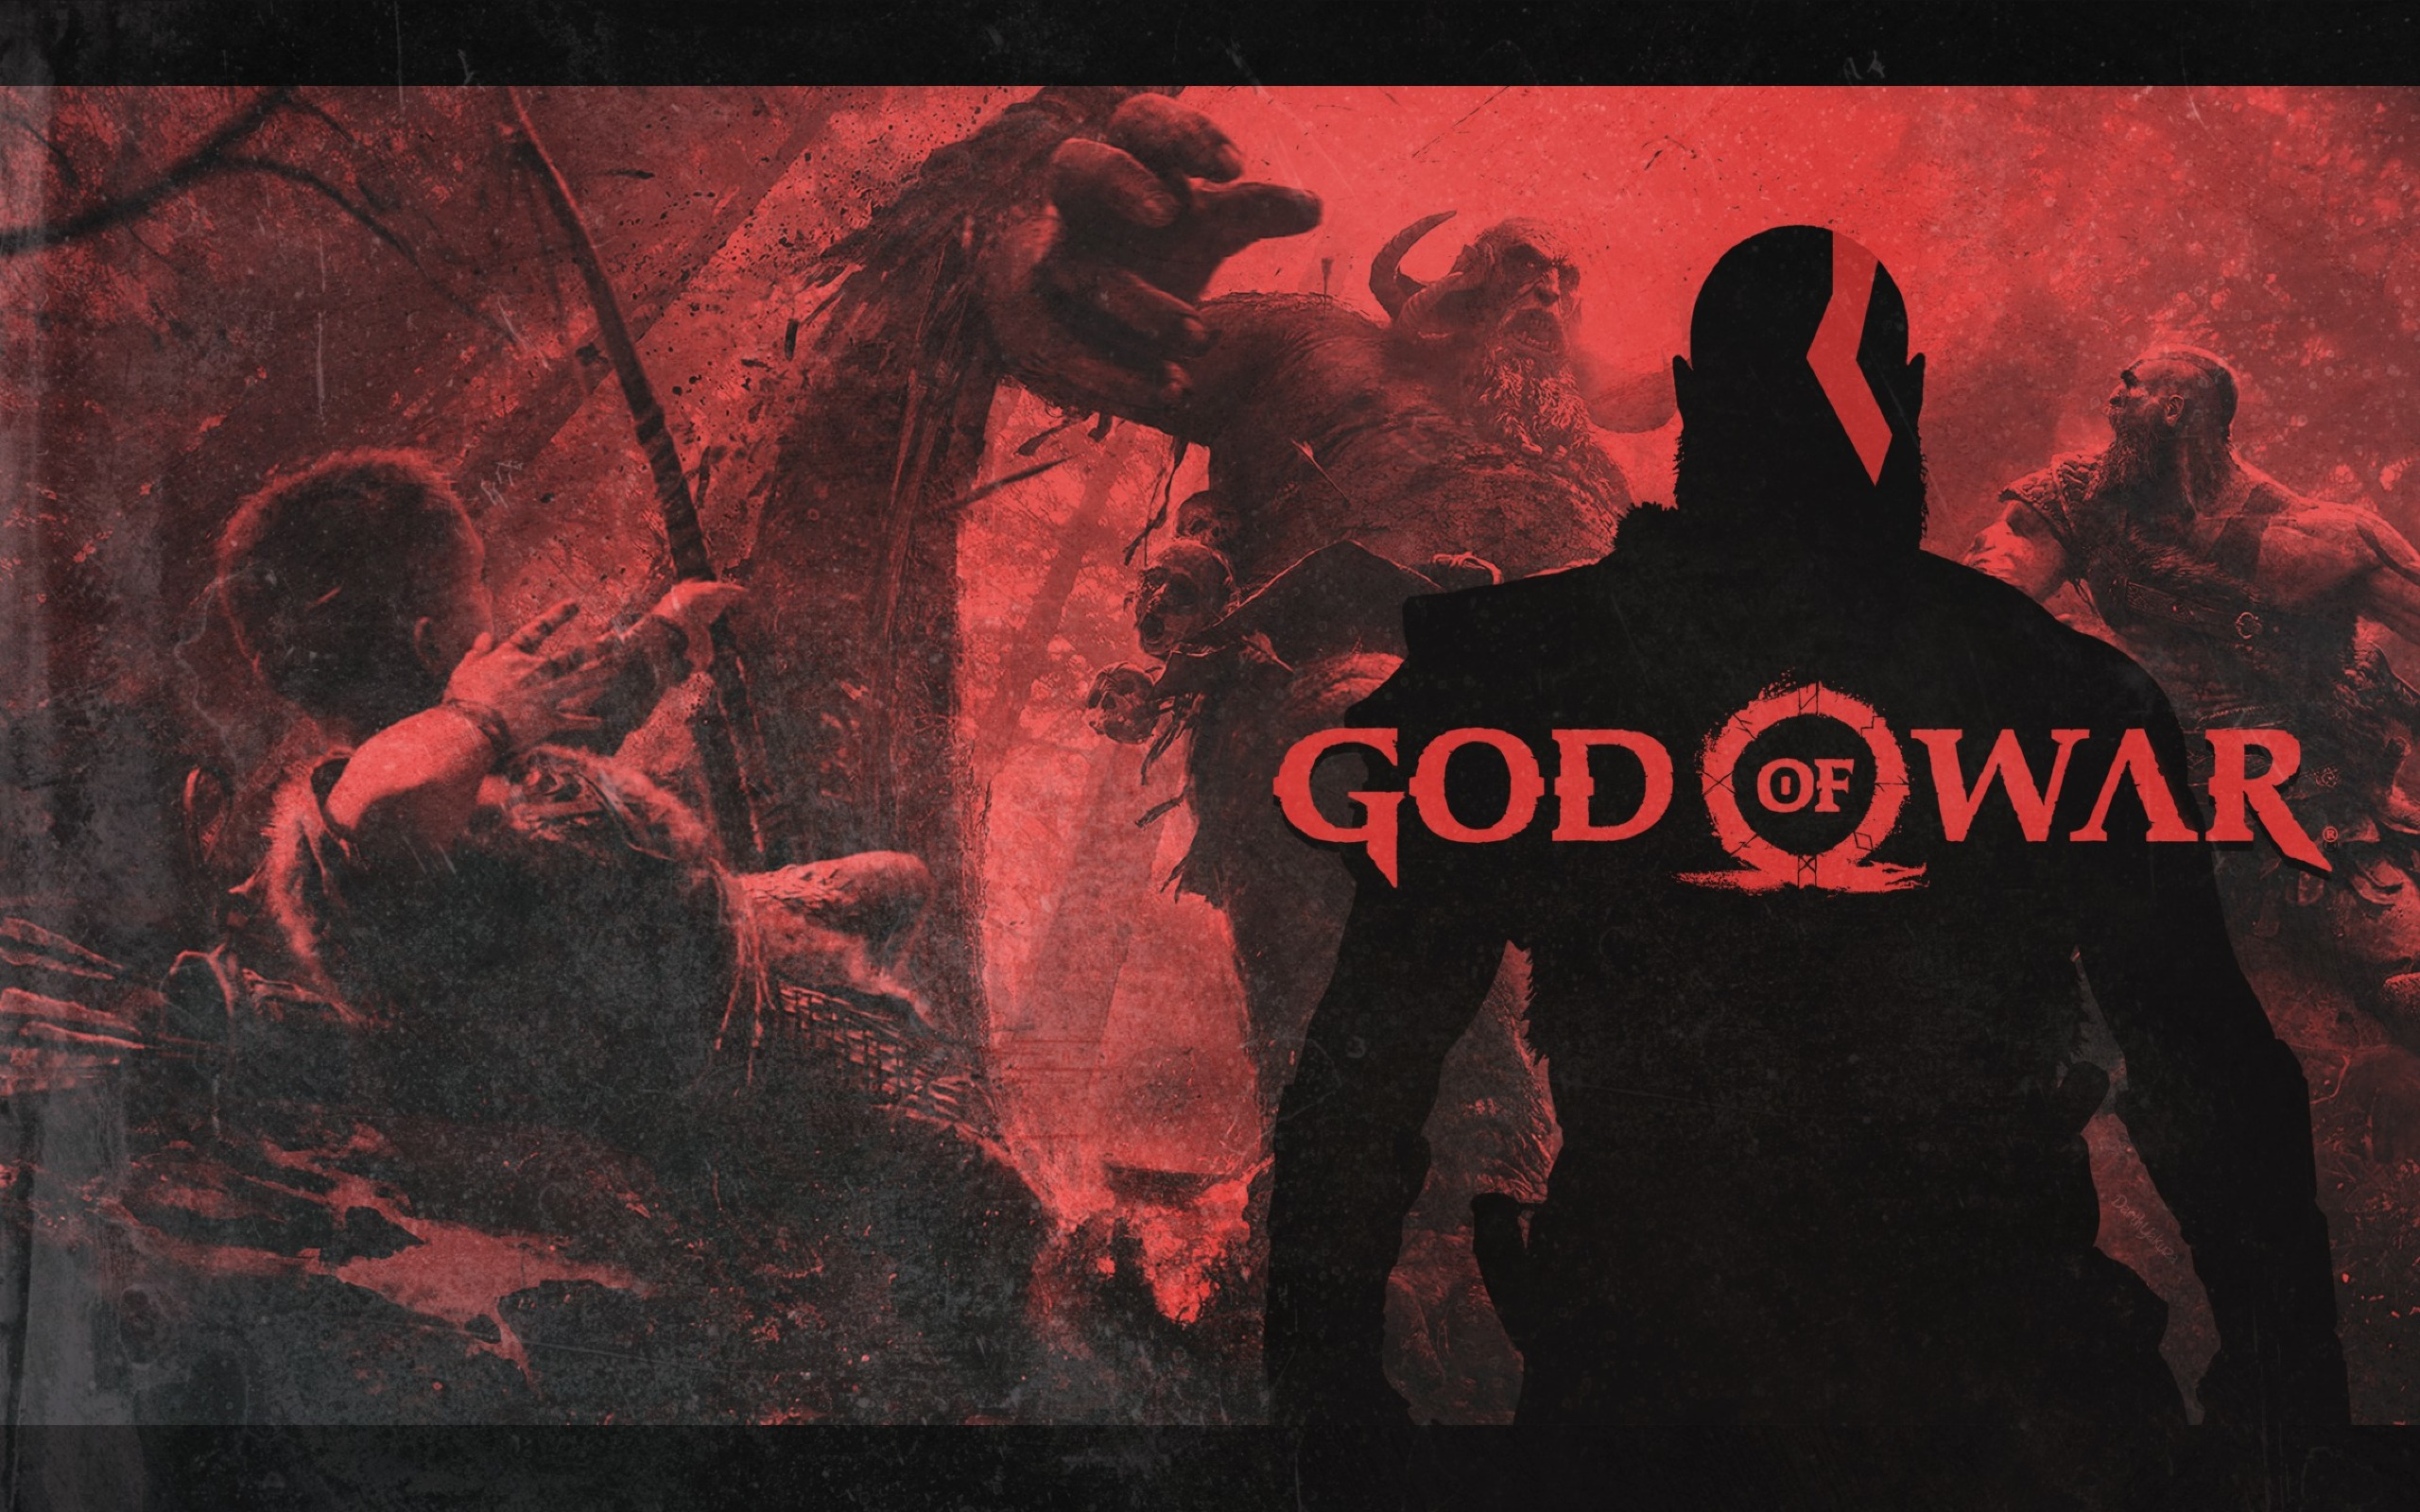 2560x1600 God Of War 4 Video Game Poster 2560x1600